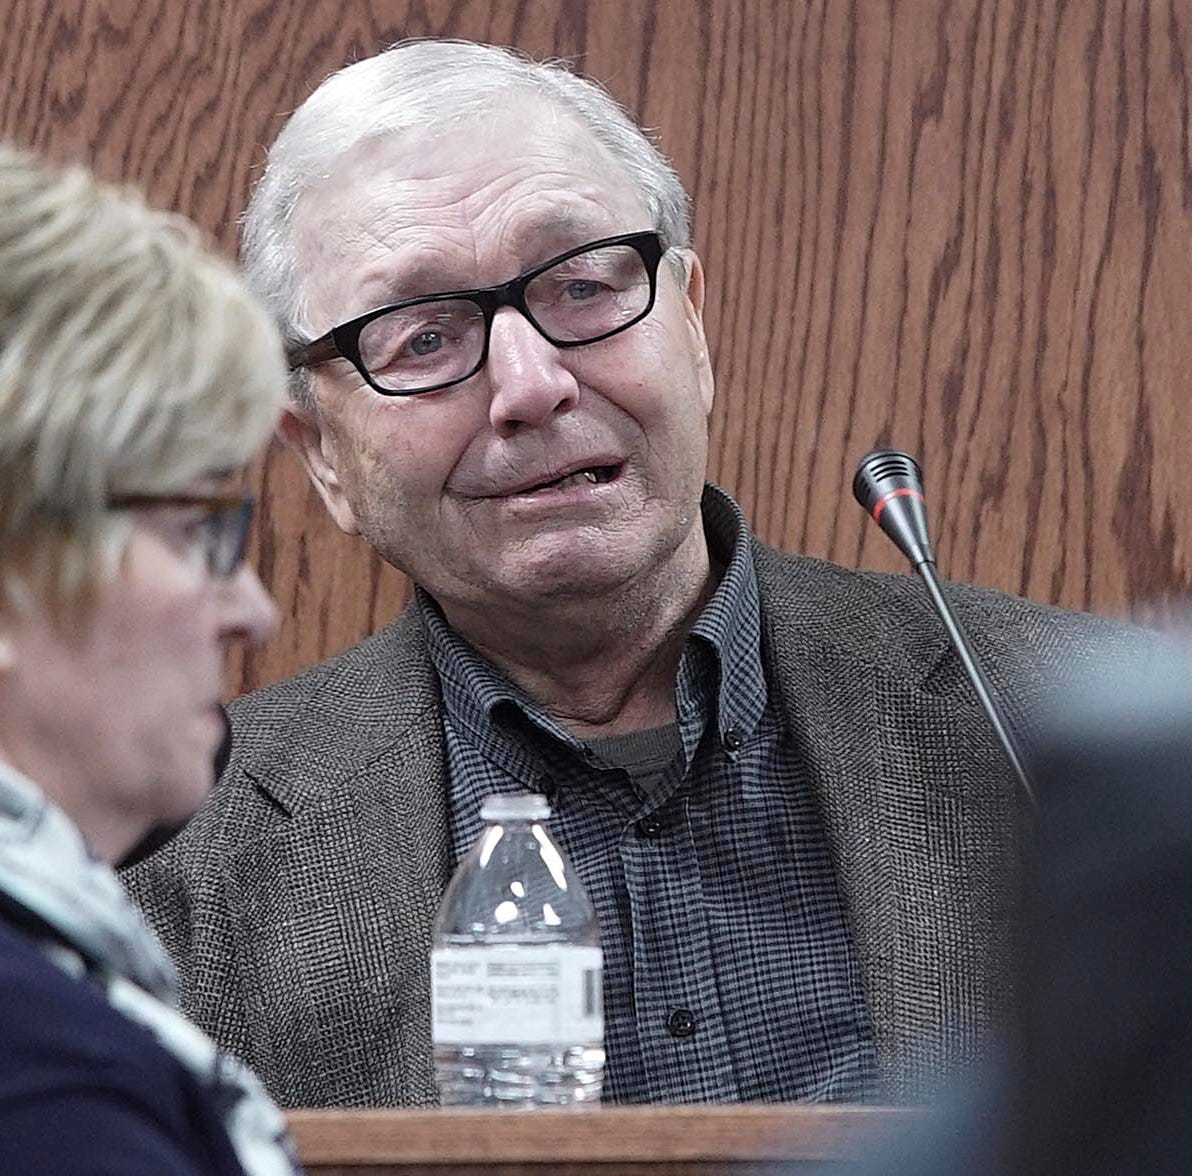 'Mom's dead': At son's murder trial, father tearfully recalls day that altered his life